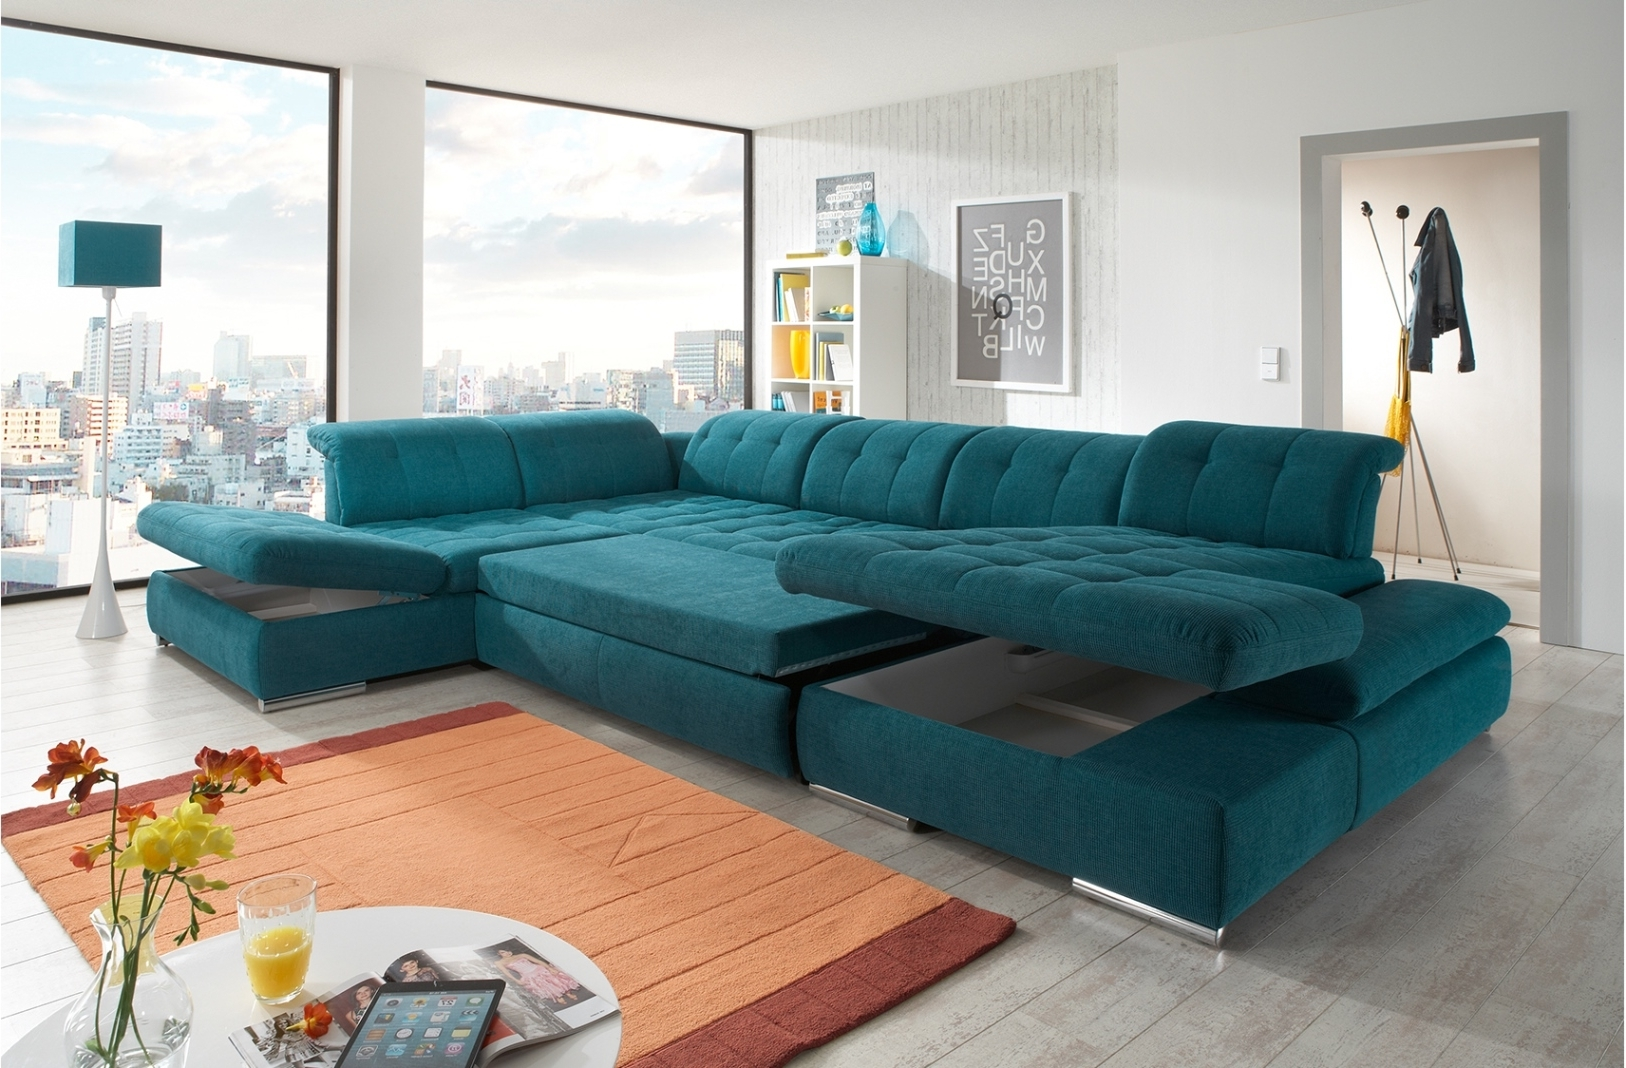 Green Sectional Sofas Intended For 2017 Alpine Sectional Sofa : Sleeper With Storage (View 7 of 15)